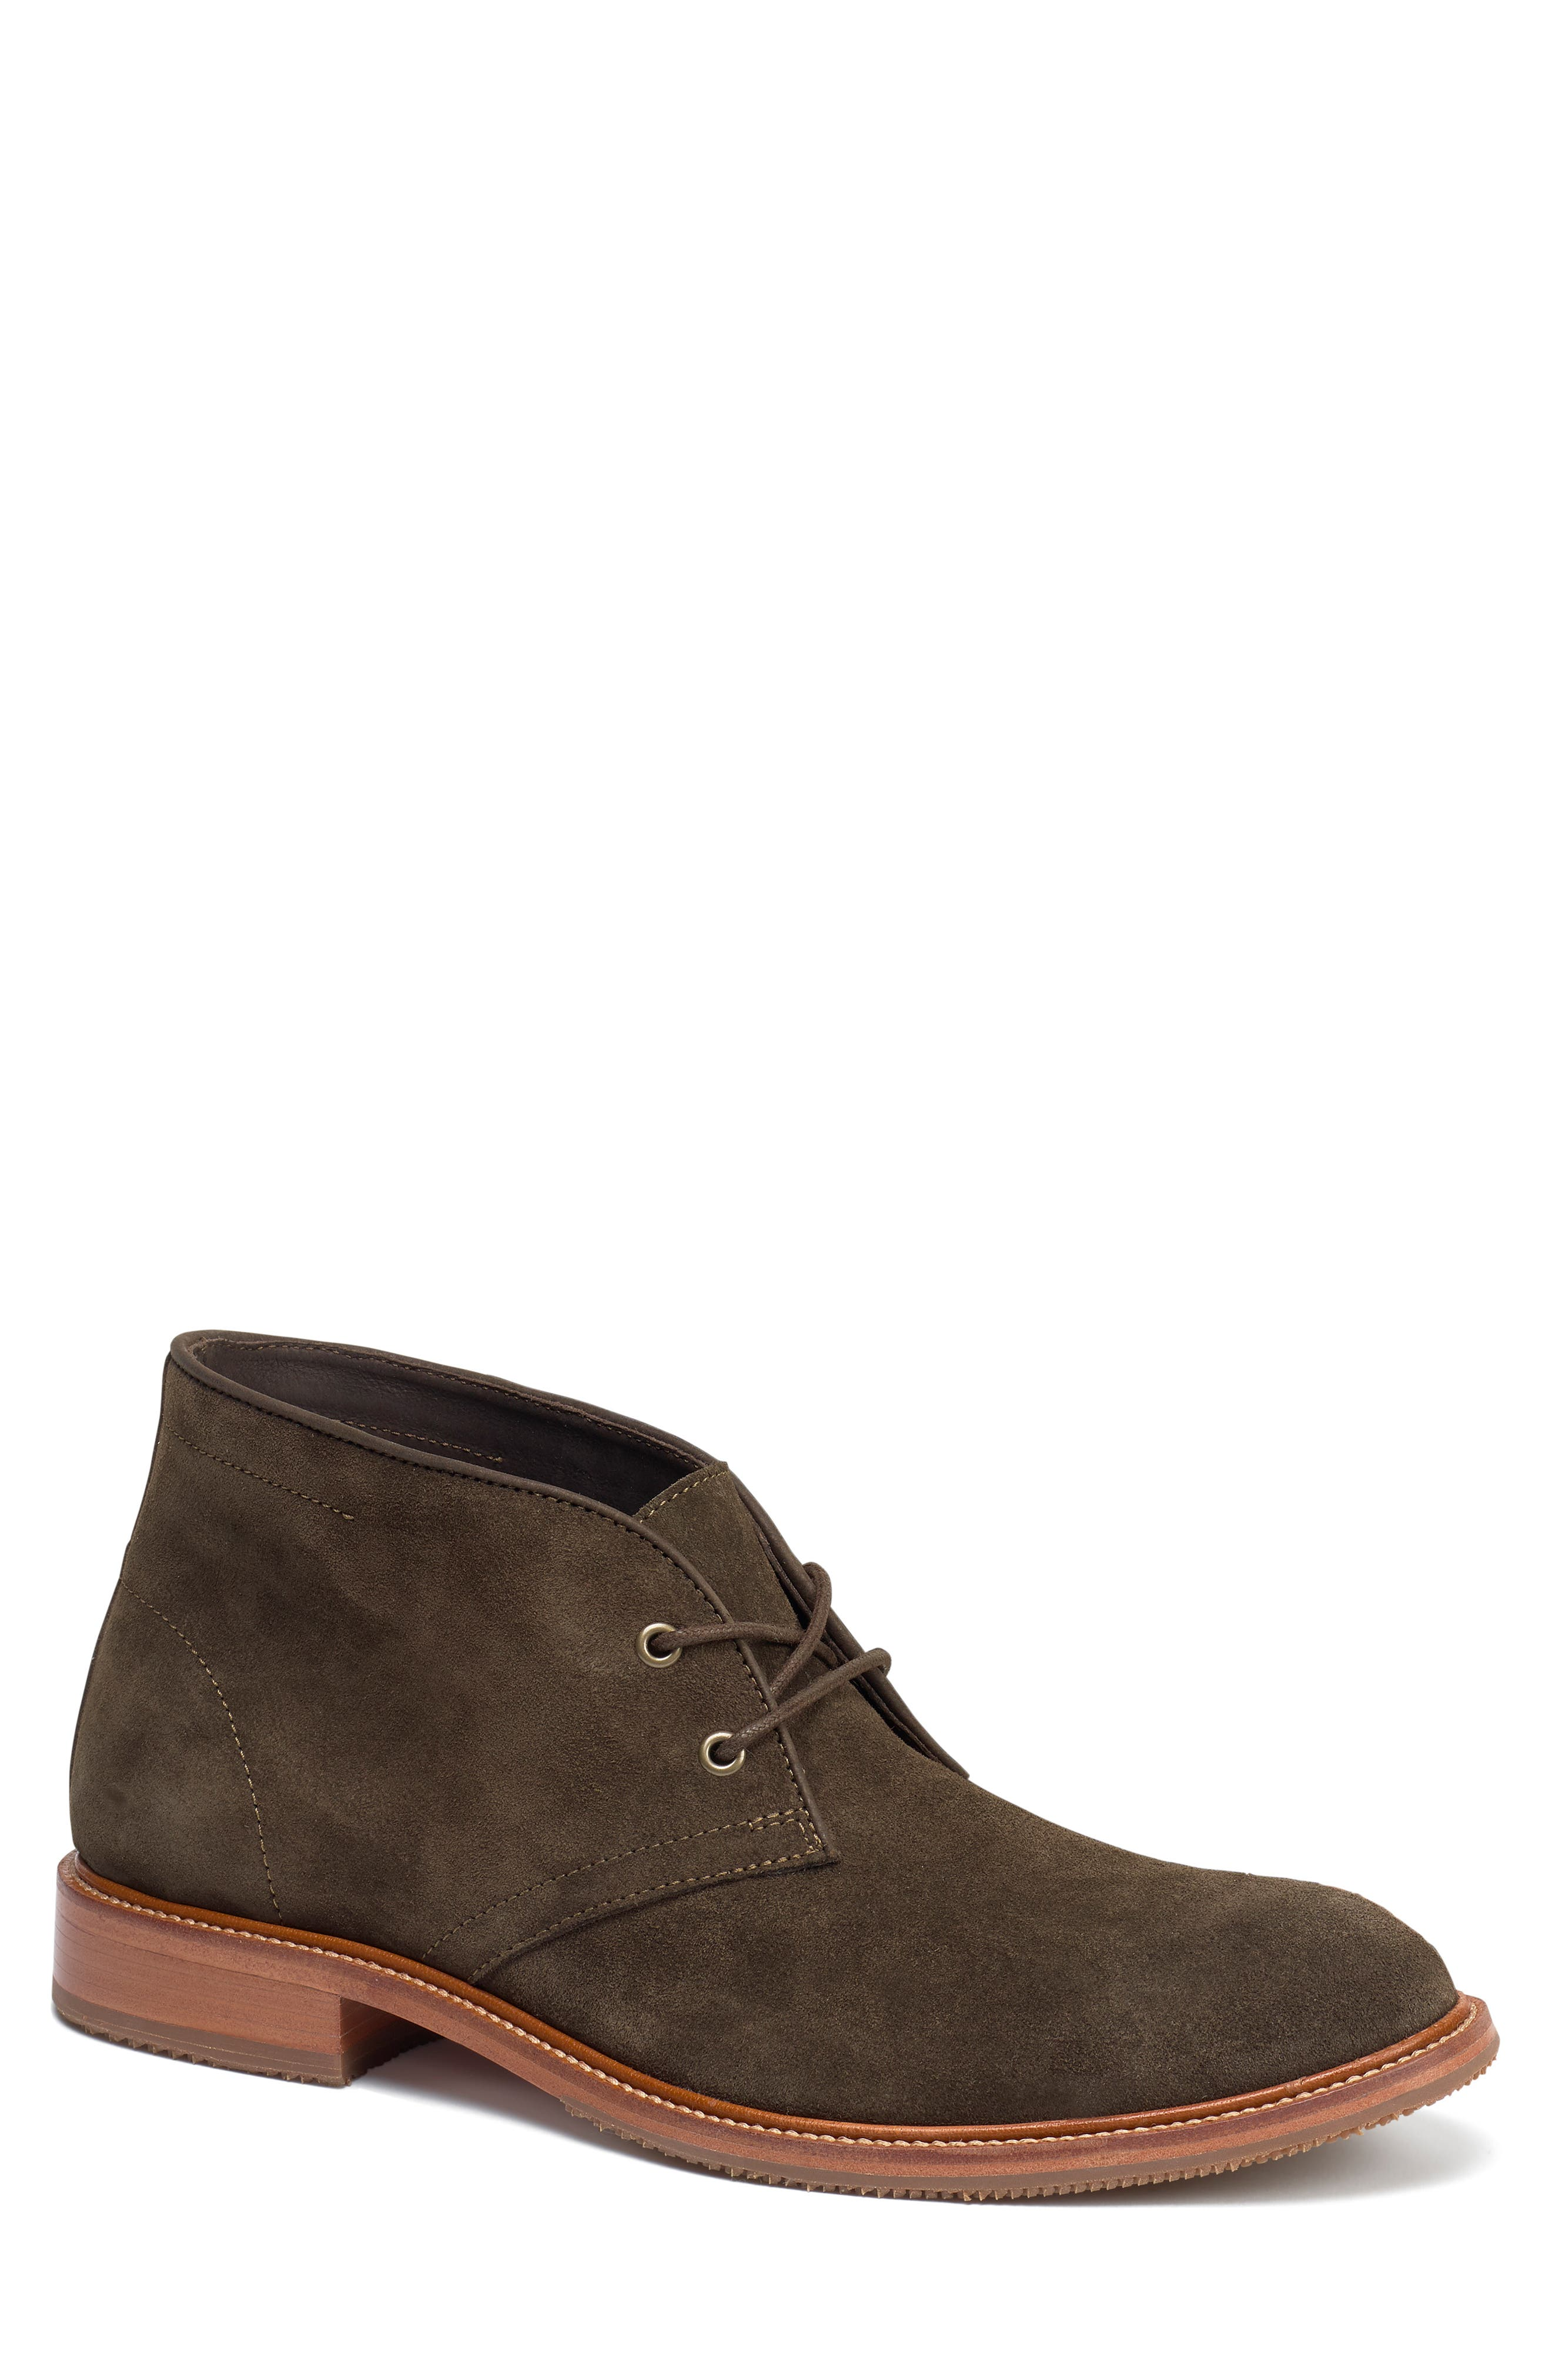 TRASK, Landers Chukka Boot, Main thumbnail 1, color, OLIVE SUEDE